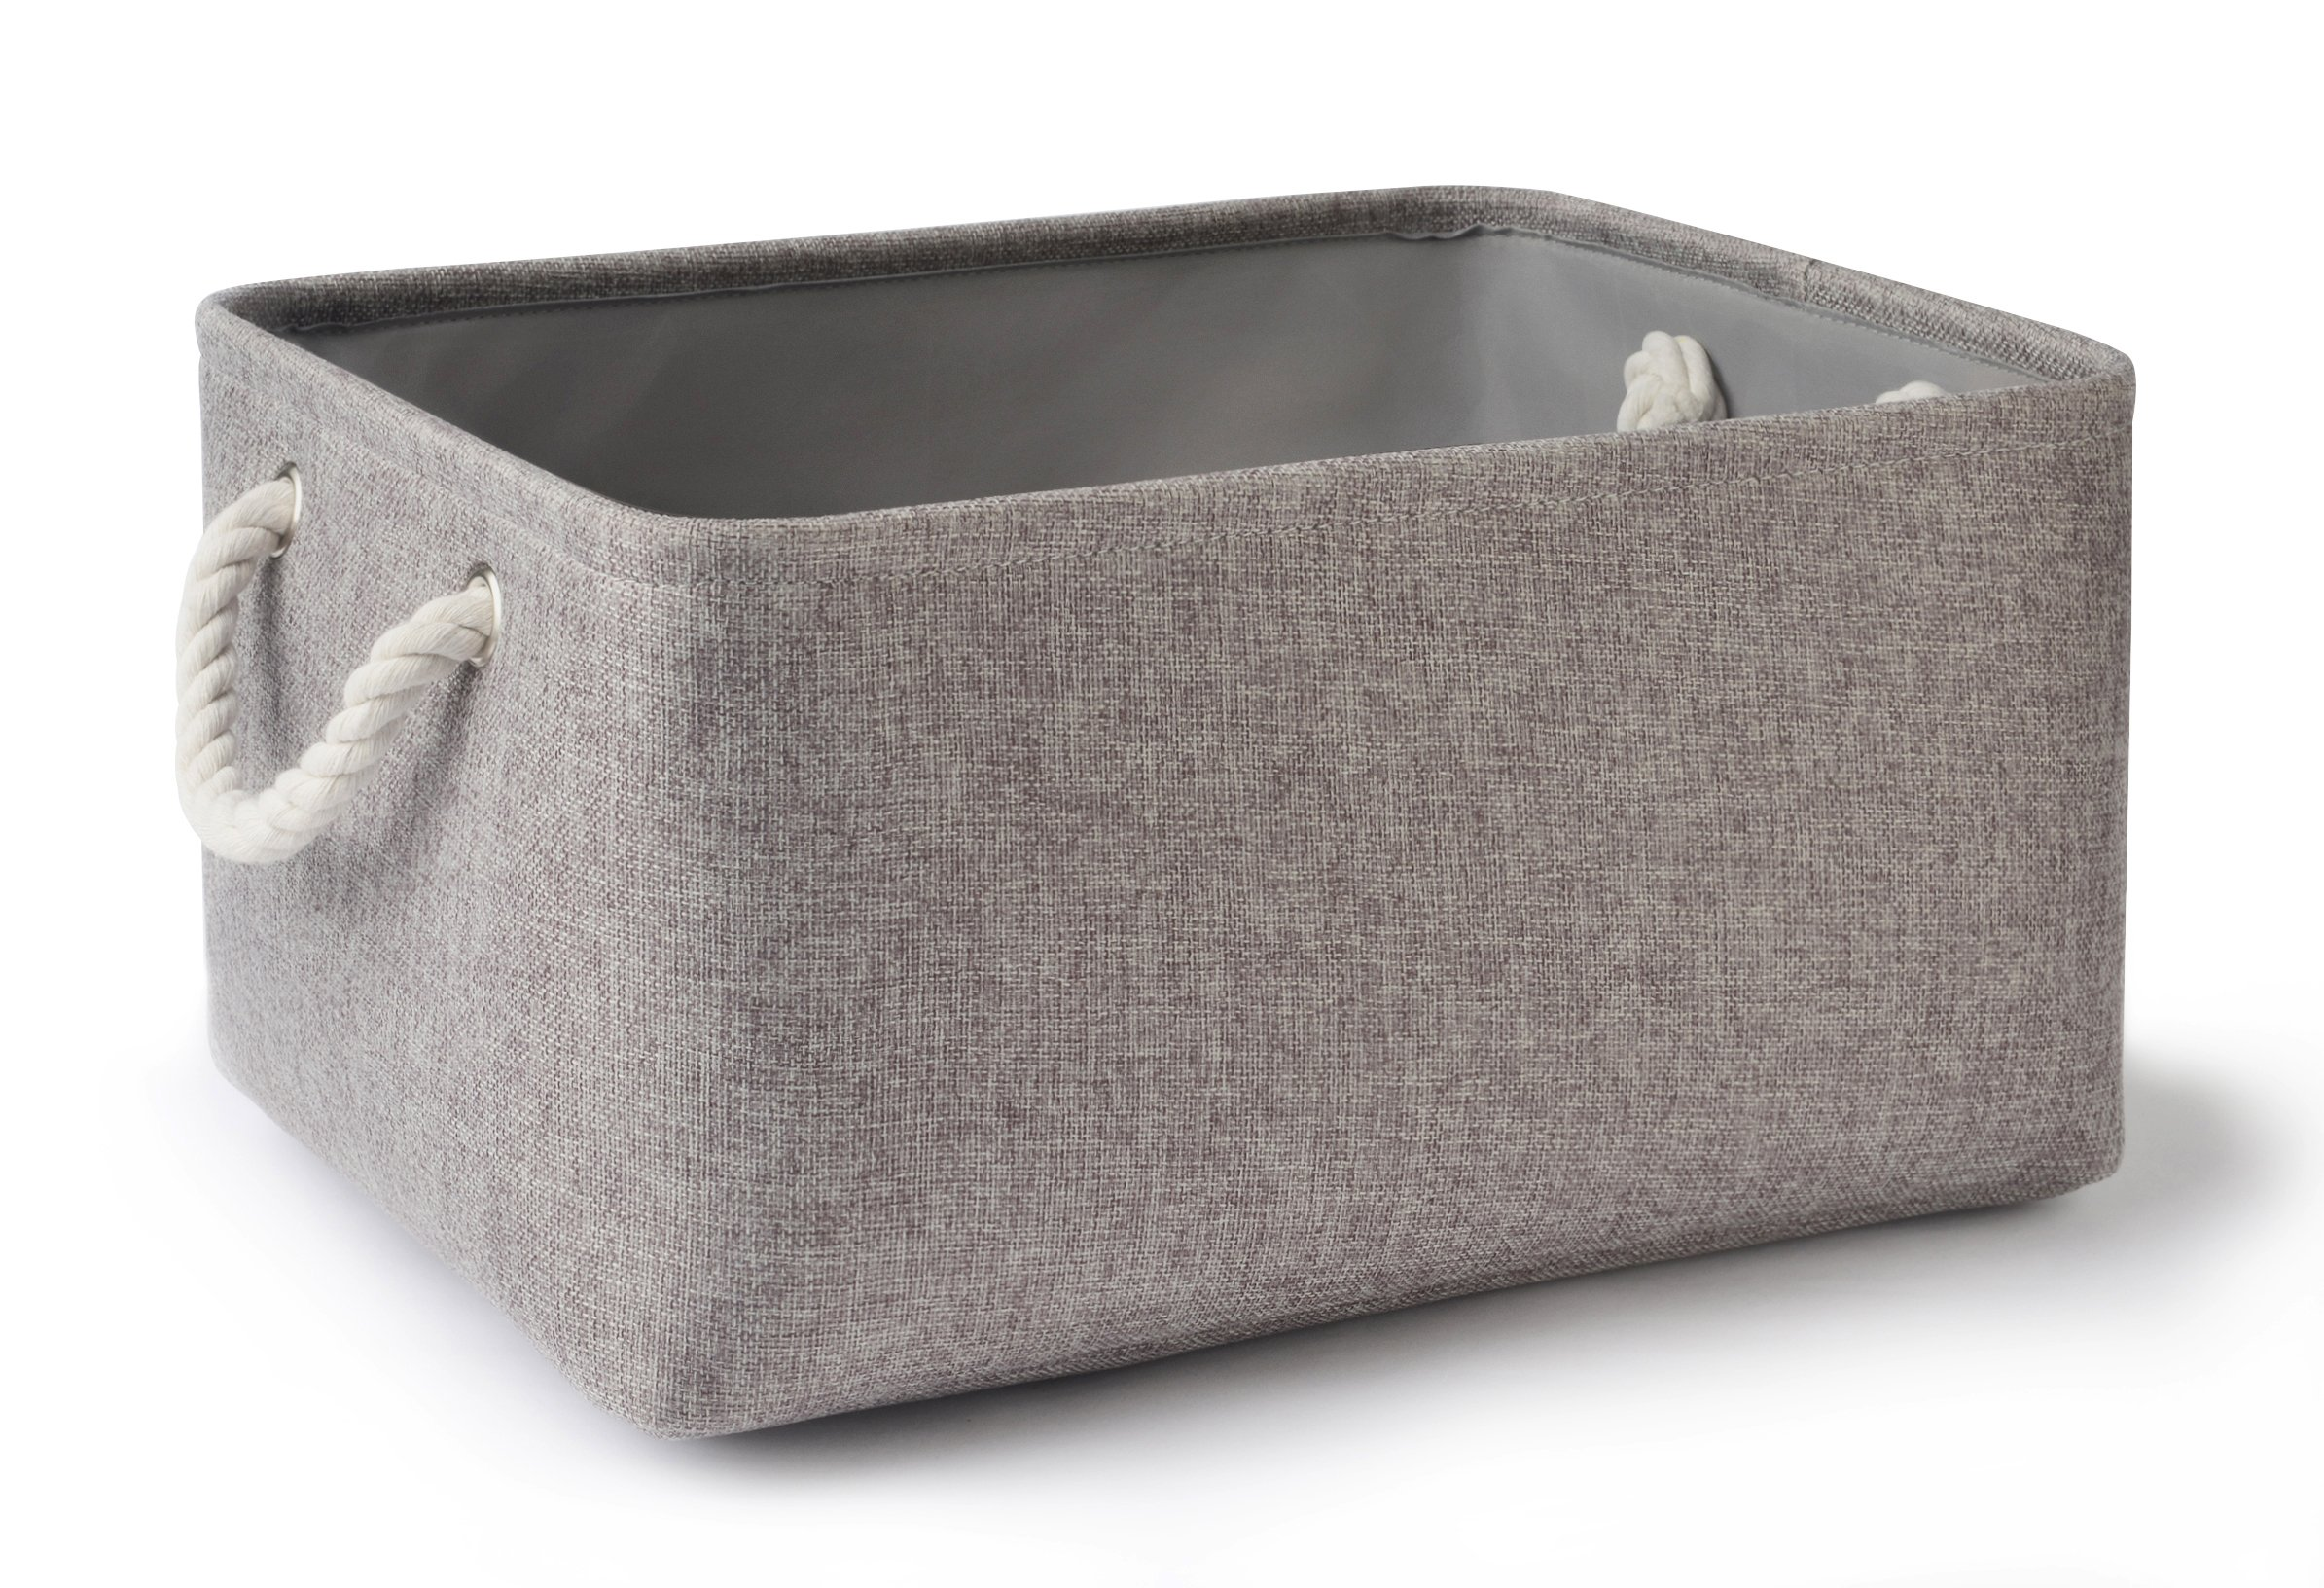 Perber Collapsible Storage Basket Bins, Decorative Foldable Rectangular Linen Fabric Storage Box Cubes Containers Handles- Large Organizer Nursery Toys,Kids Room,Towels,Clothes, Grey 16Lx12Wx7.9H